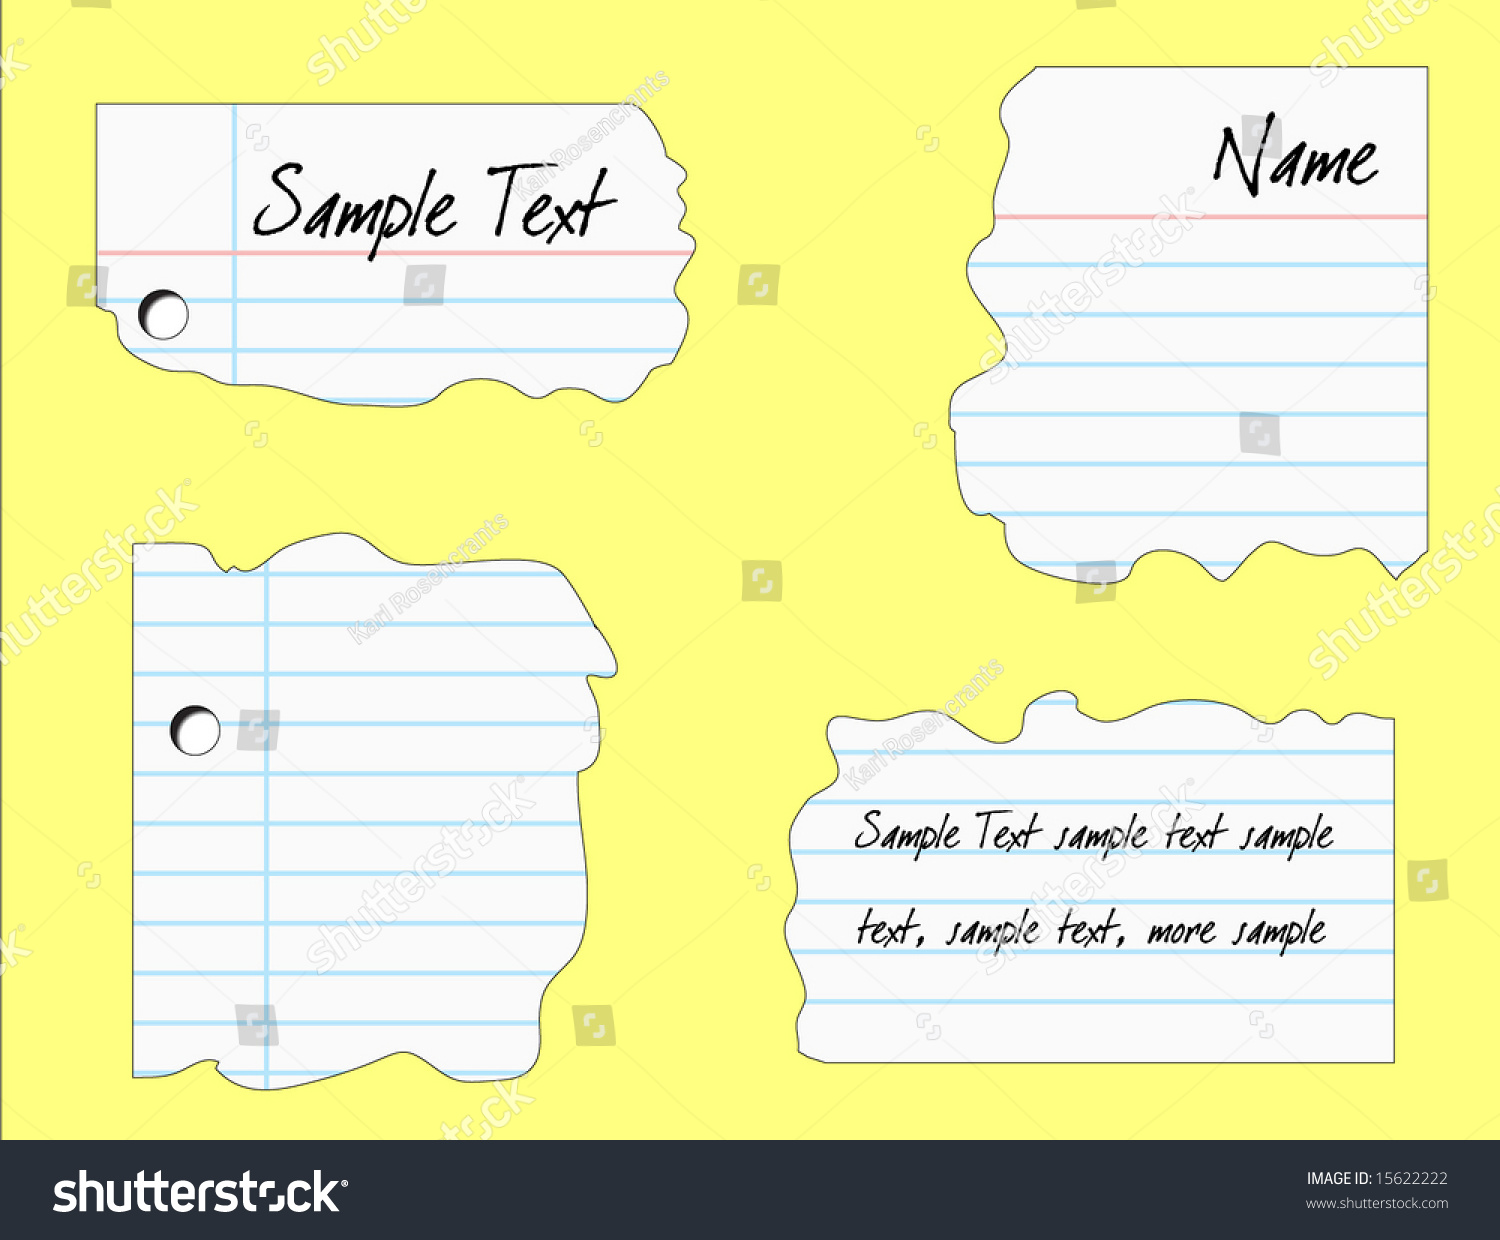 Notebook Paper Ripped Into Pieces Vector Illustration